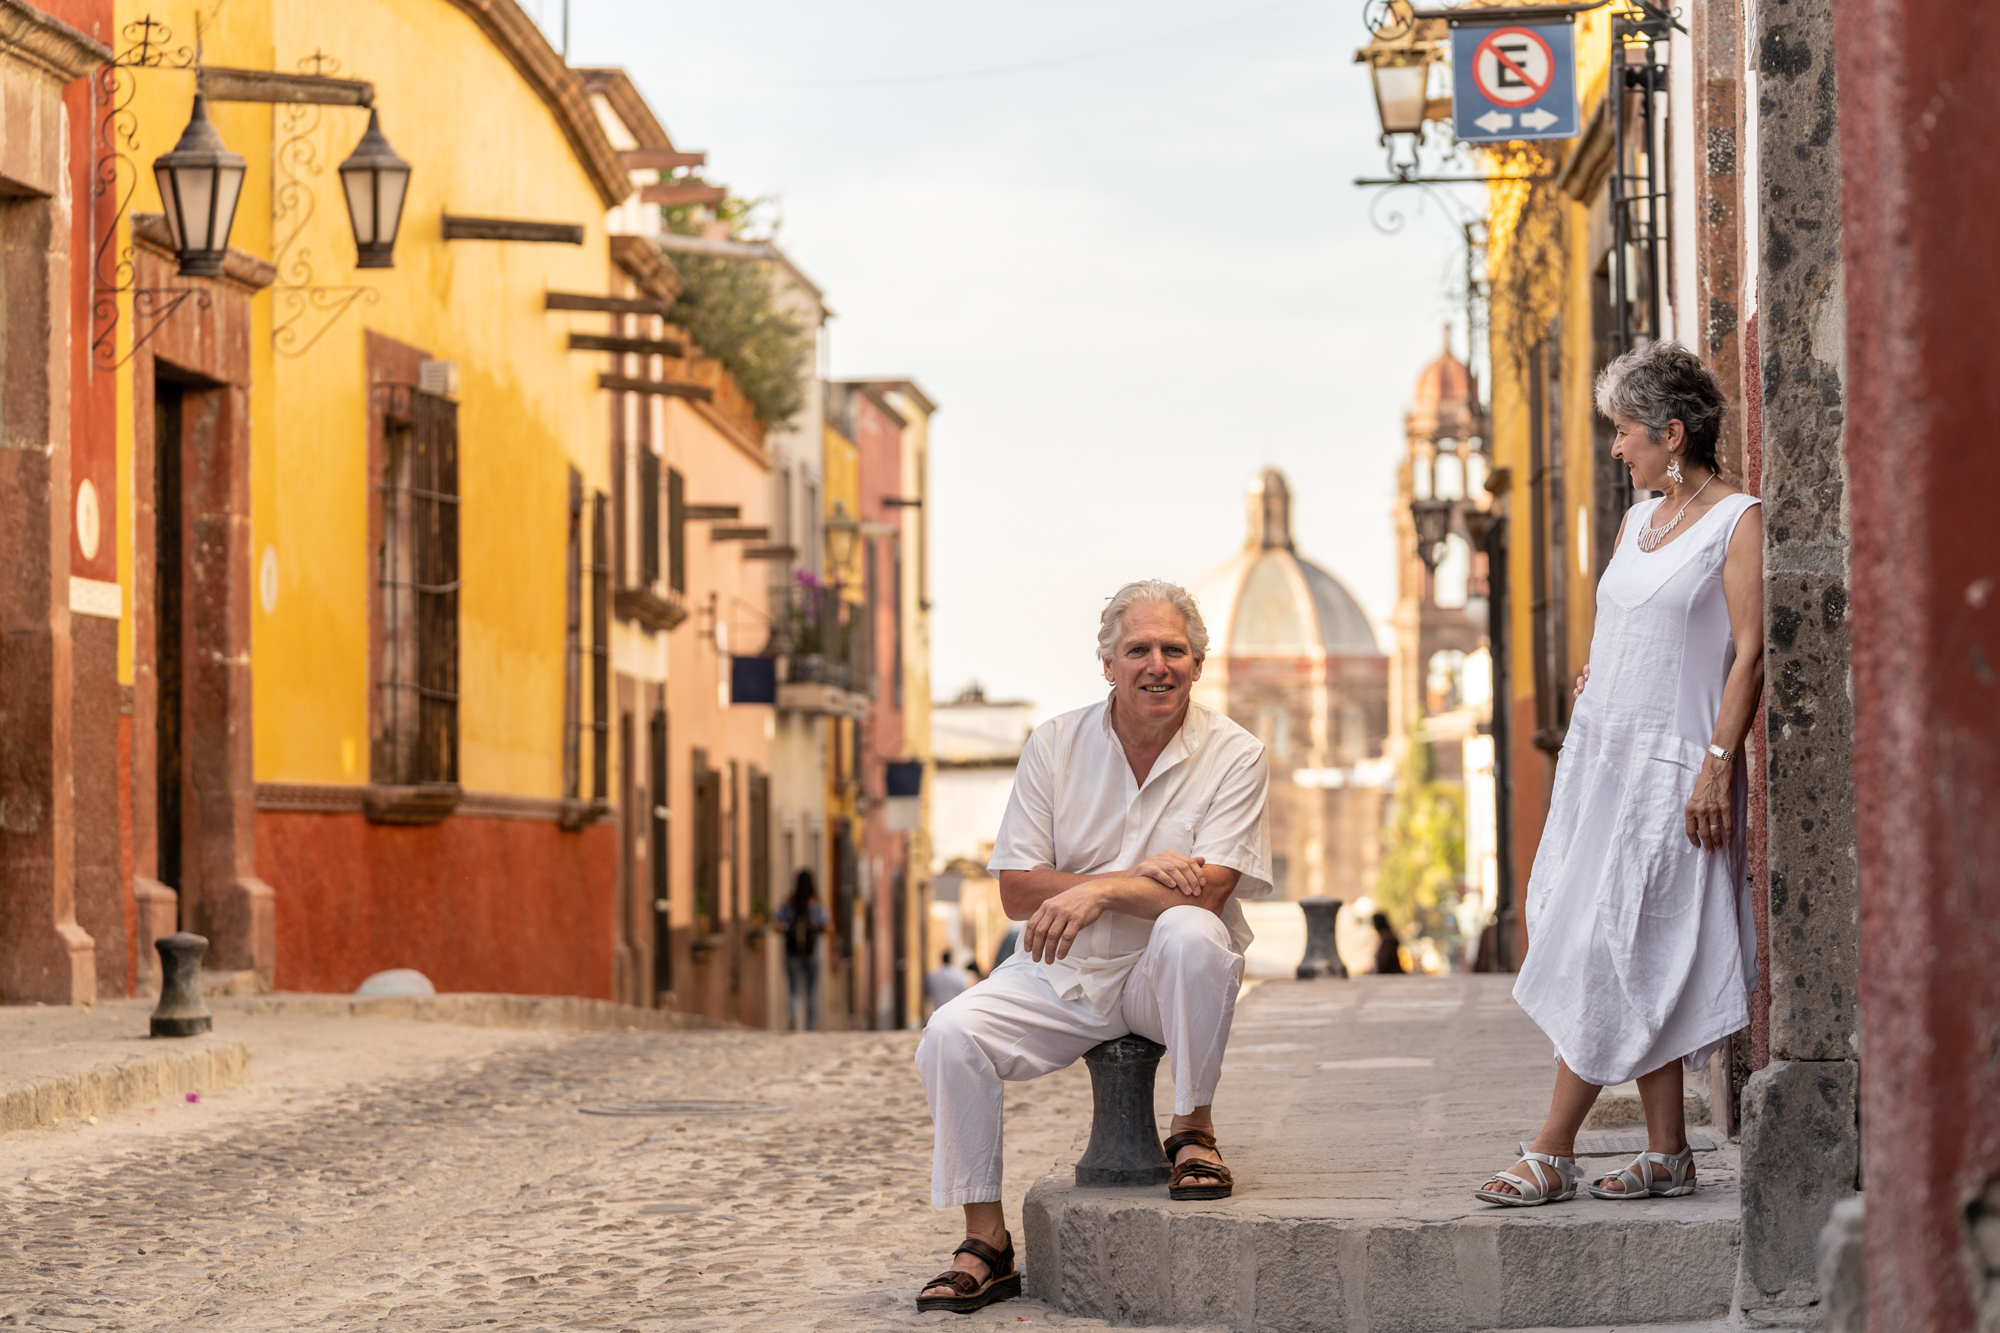 Photoshoot session in San Miguel de Allende with Suzanne and Leo-37.jpg